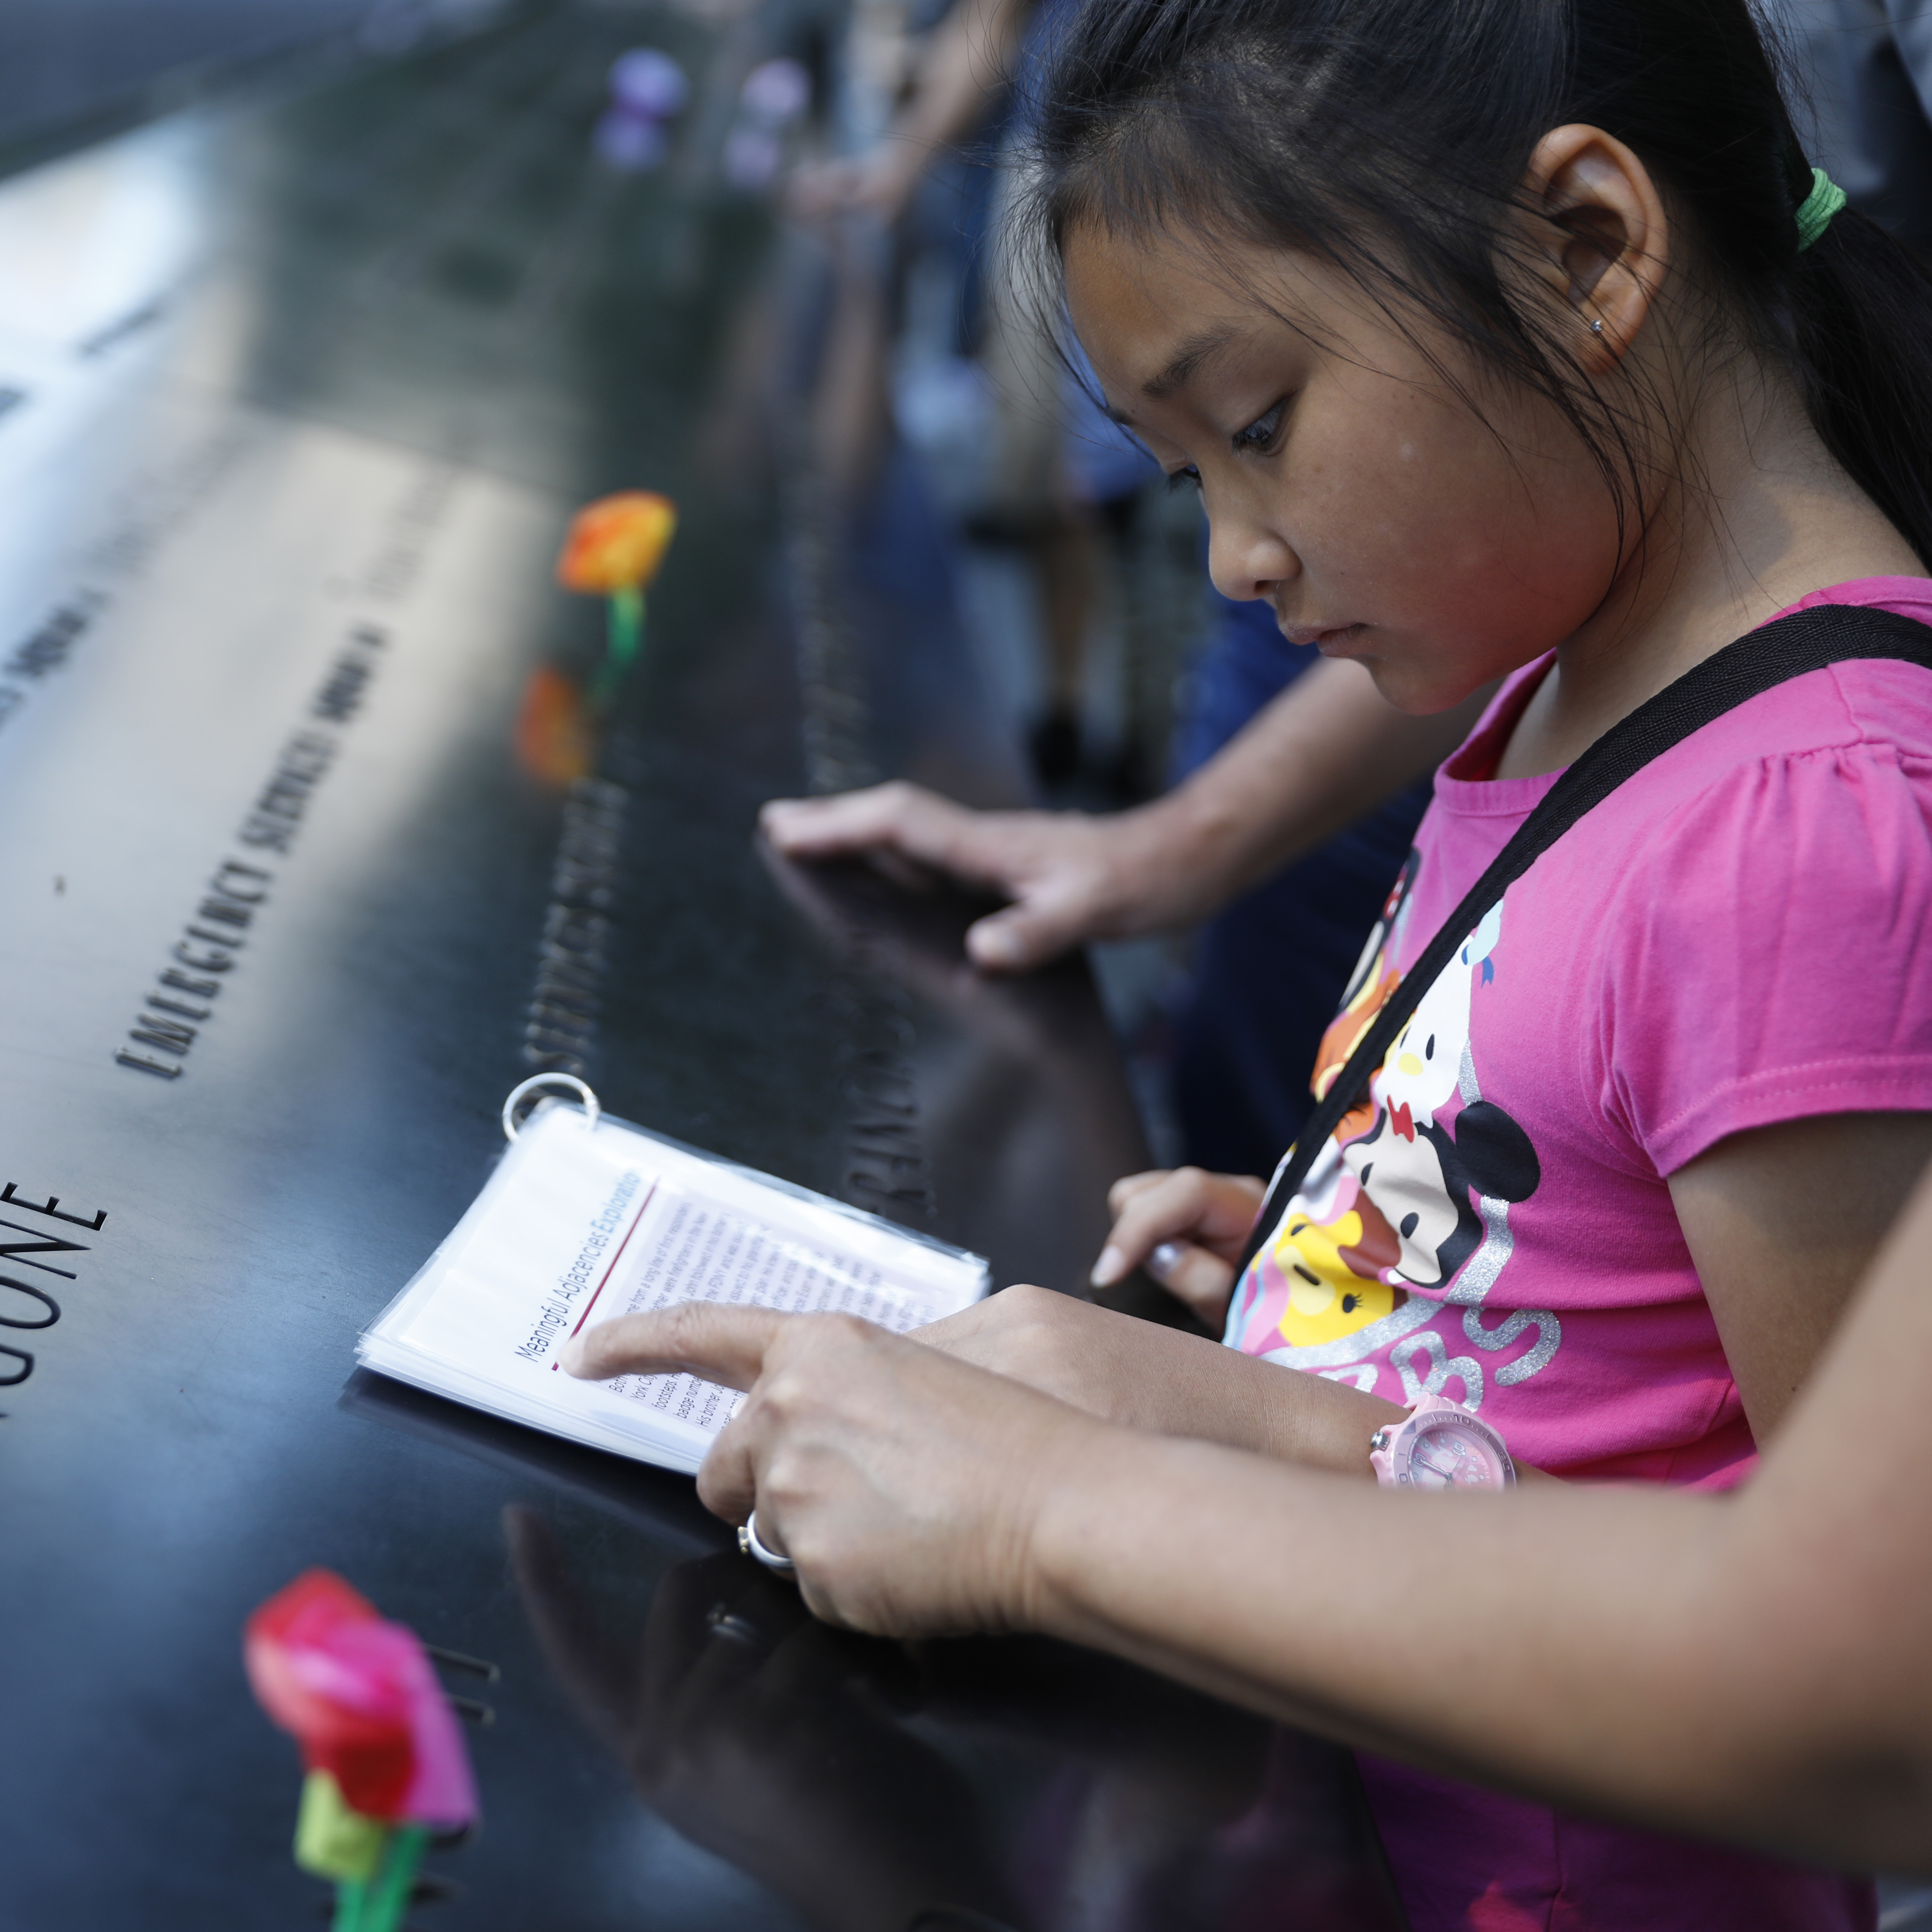 A child learns about the tragedies of 9/11 at the memorial